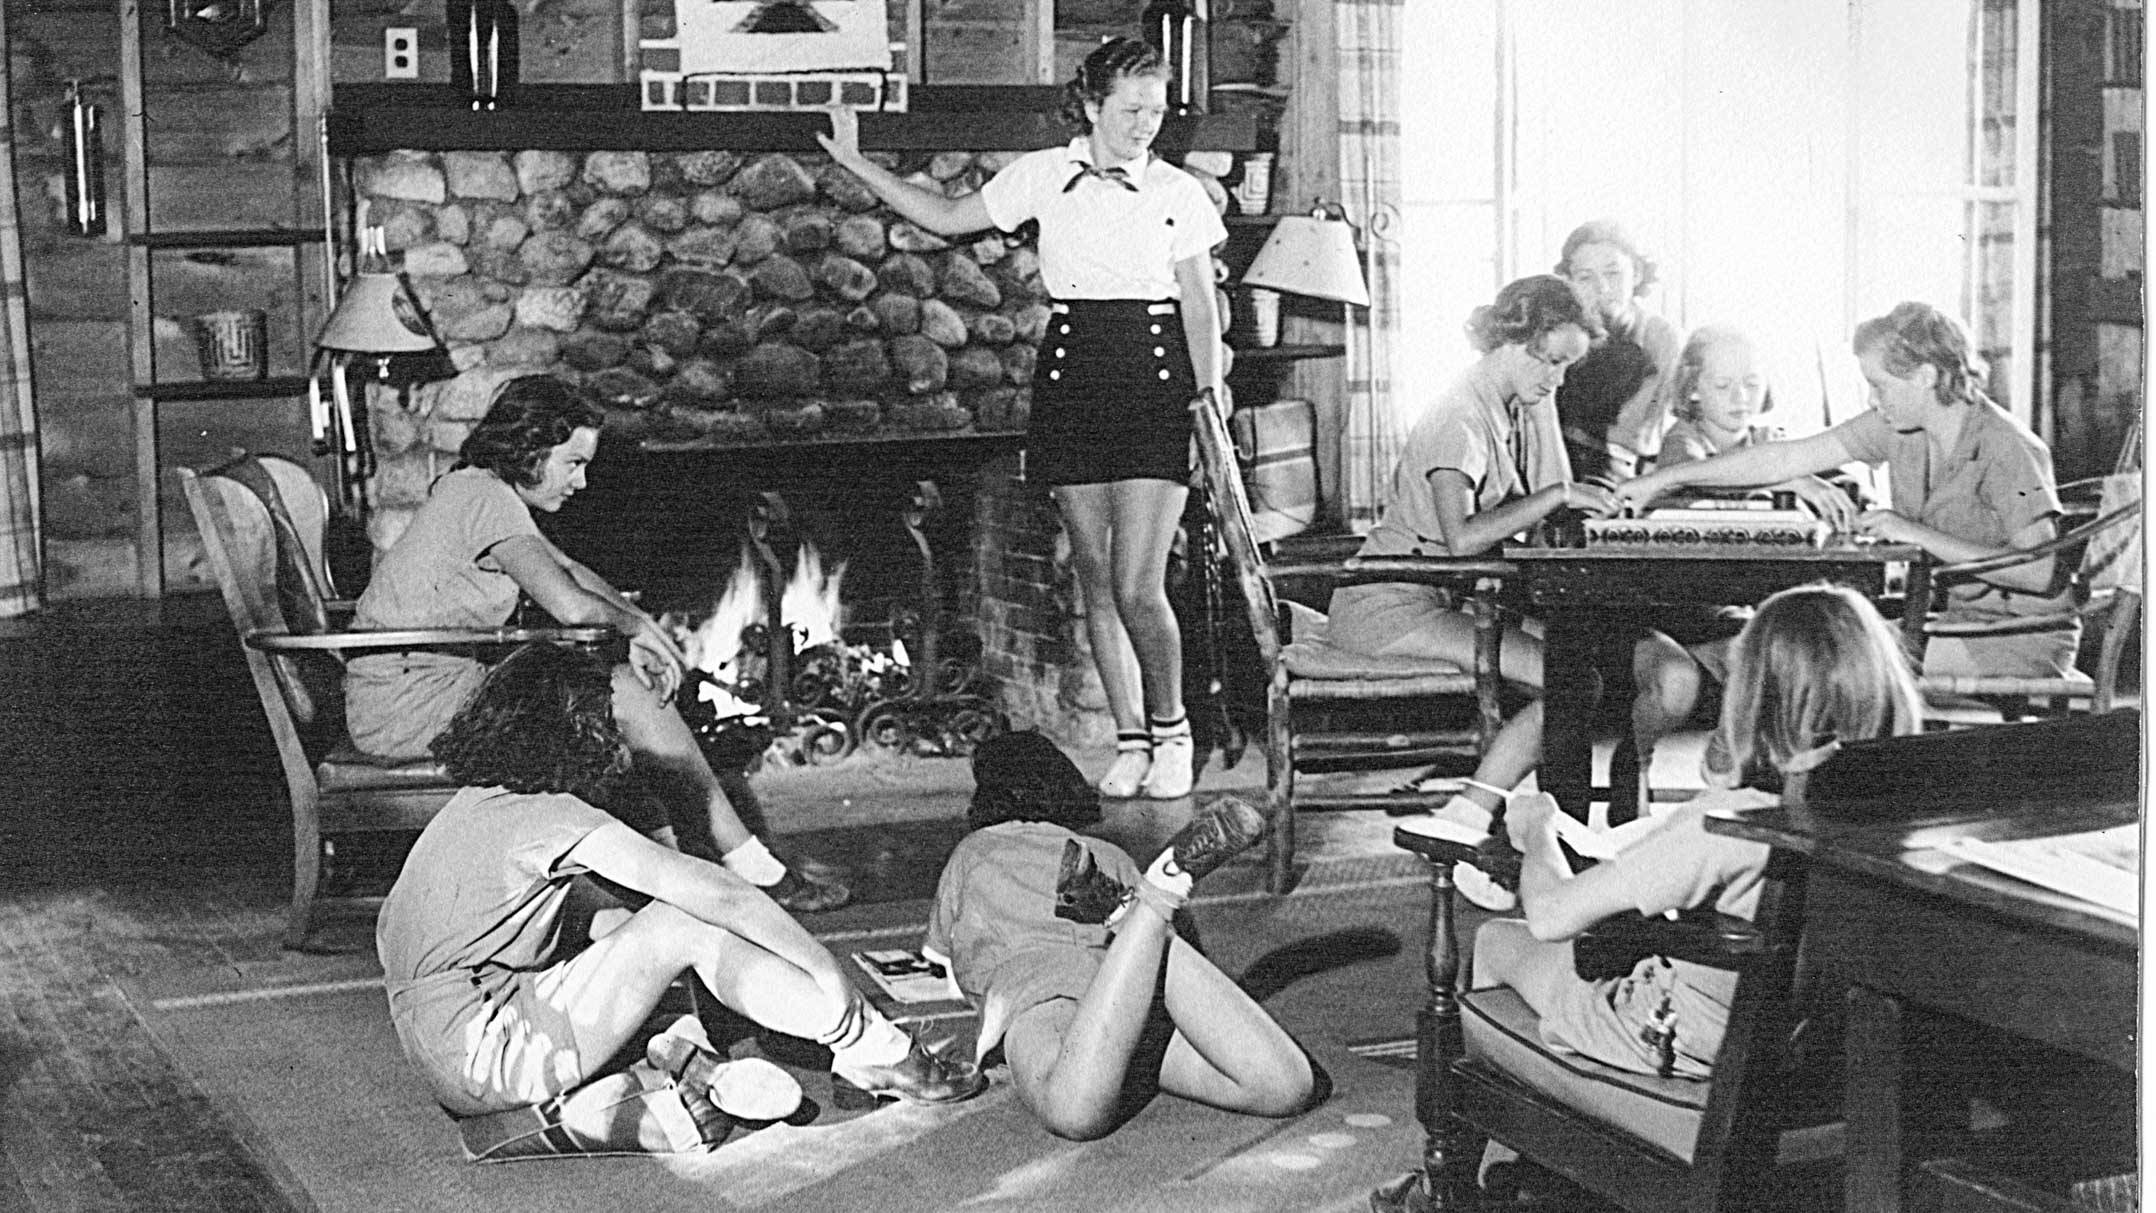 Clearwater campers at Clear Lake cabin in 1937